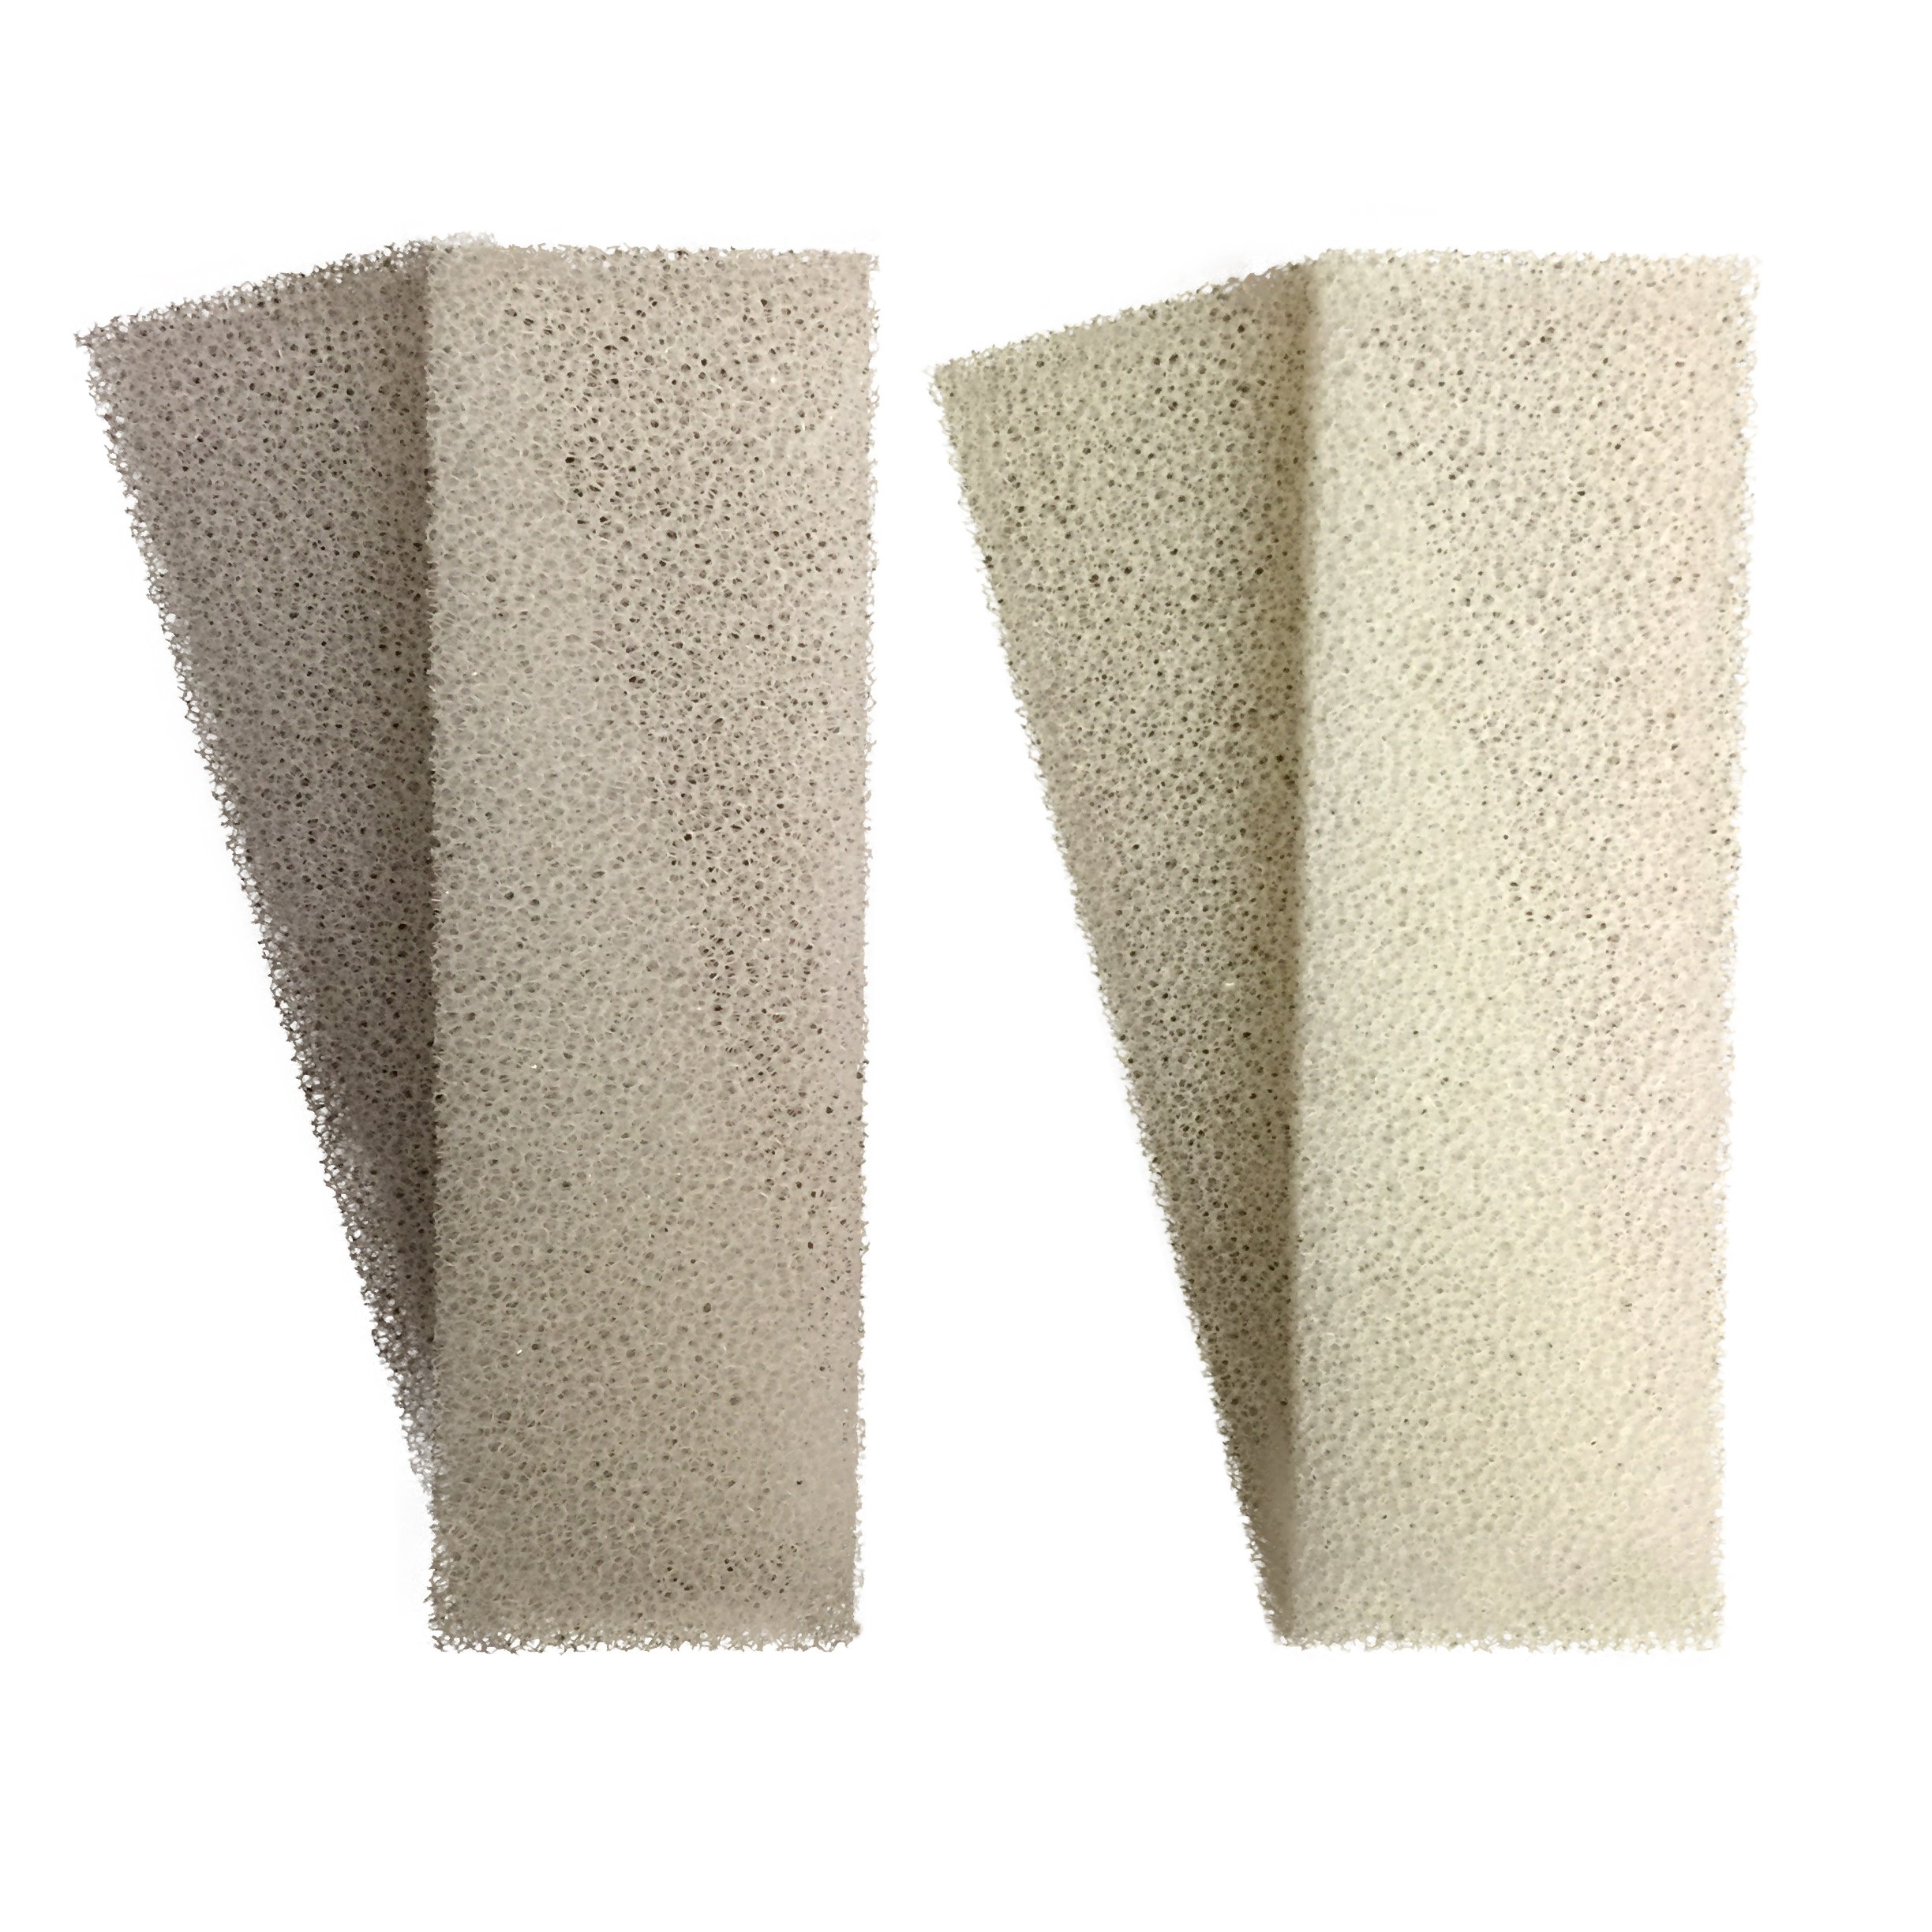 Finest-Filters 4 x Compatible Foam Filter Pads to fit Fluval U3 Range of Internal Filters